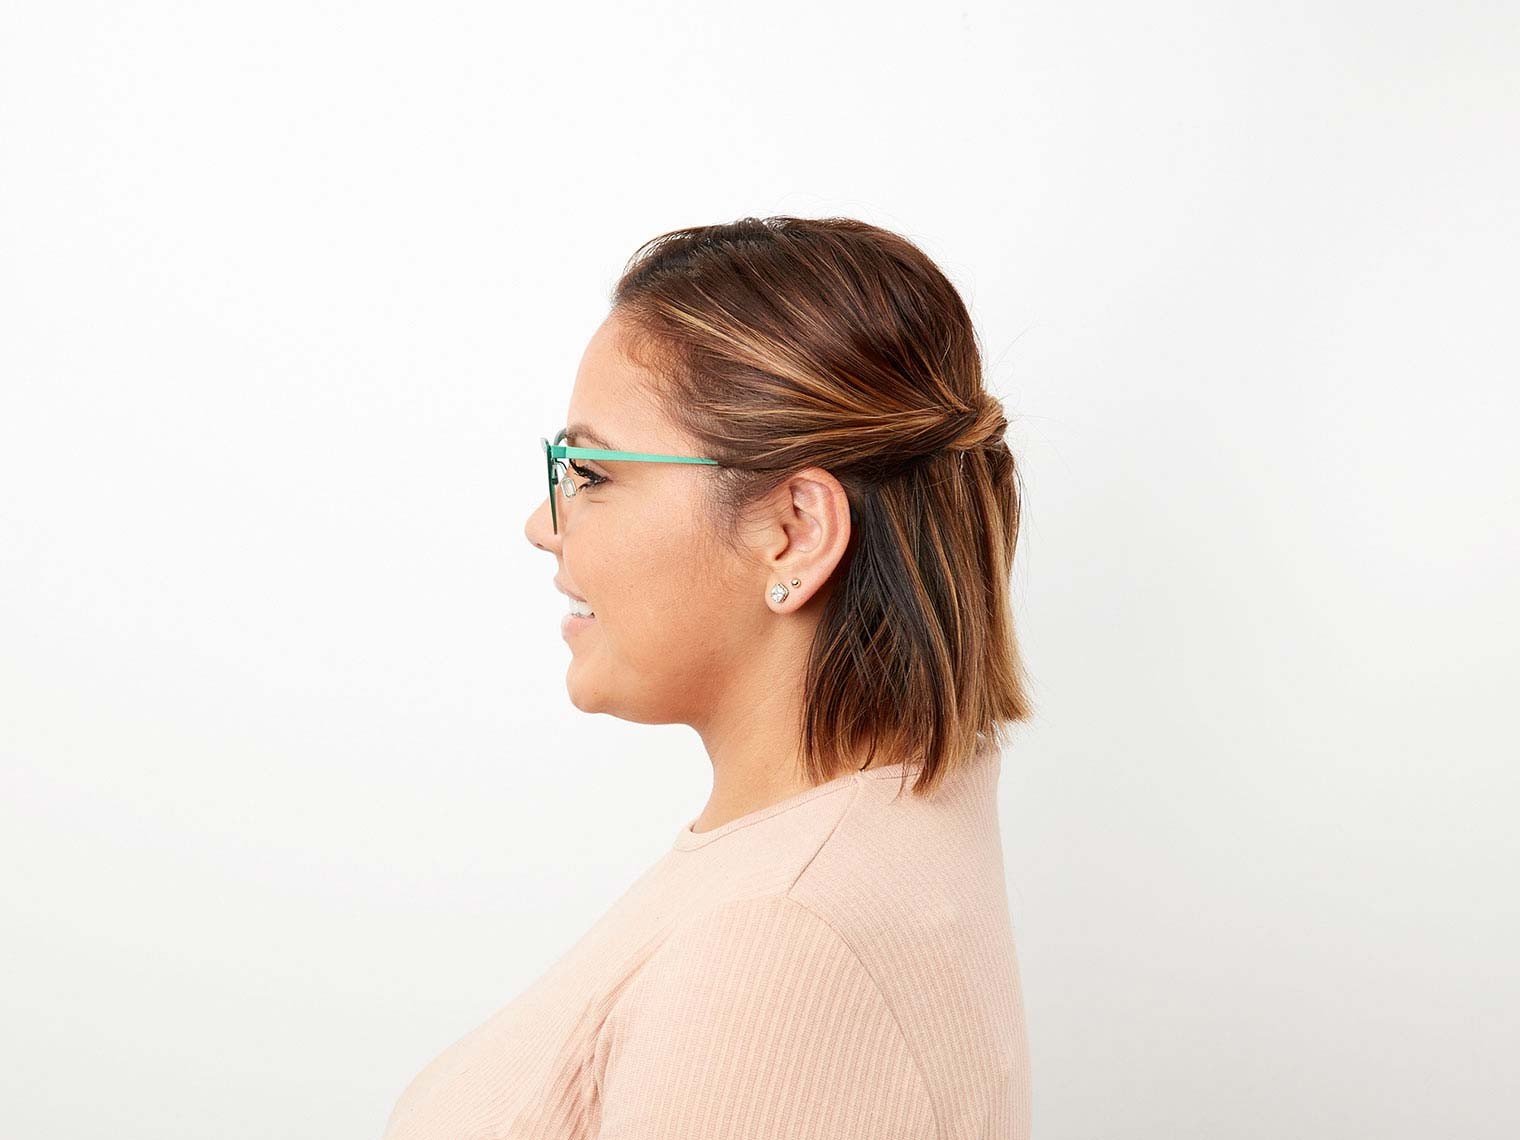 Derek Cardigan Frankie 7705 side view